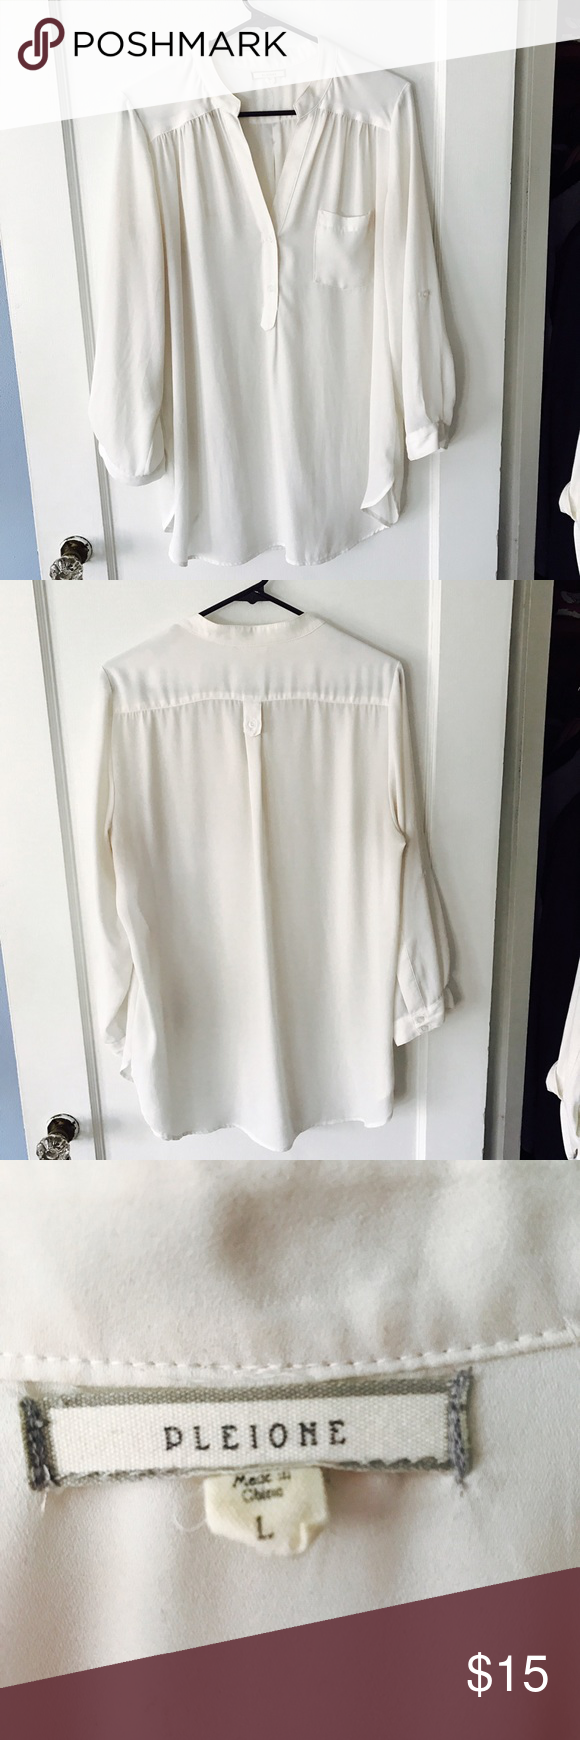 Pleione White Tunic White Tunic featuring button details and 3/4 length adjustable sleeves. Perfect with leggings or tucked into jeans or slacks for work. Slightly sheer, camisole underneath recommended Pleione Tops Blouses